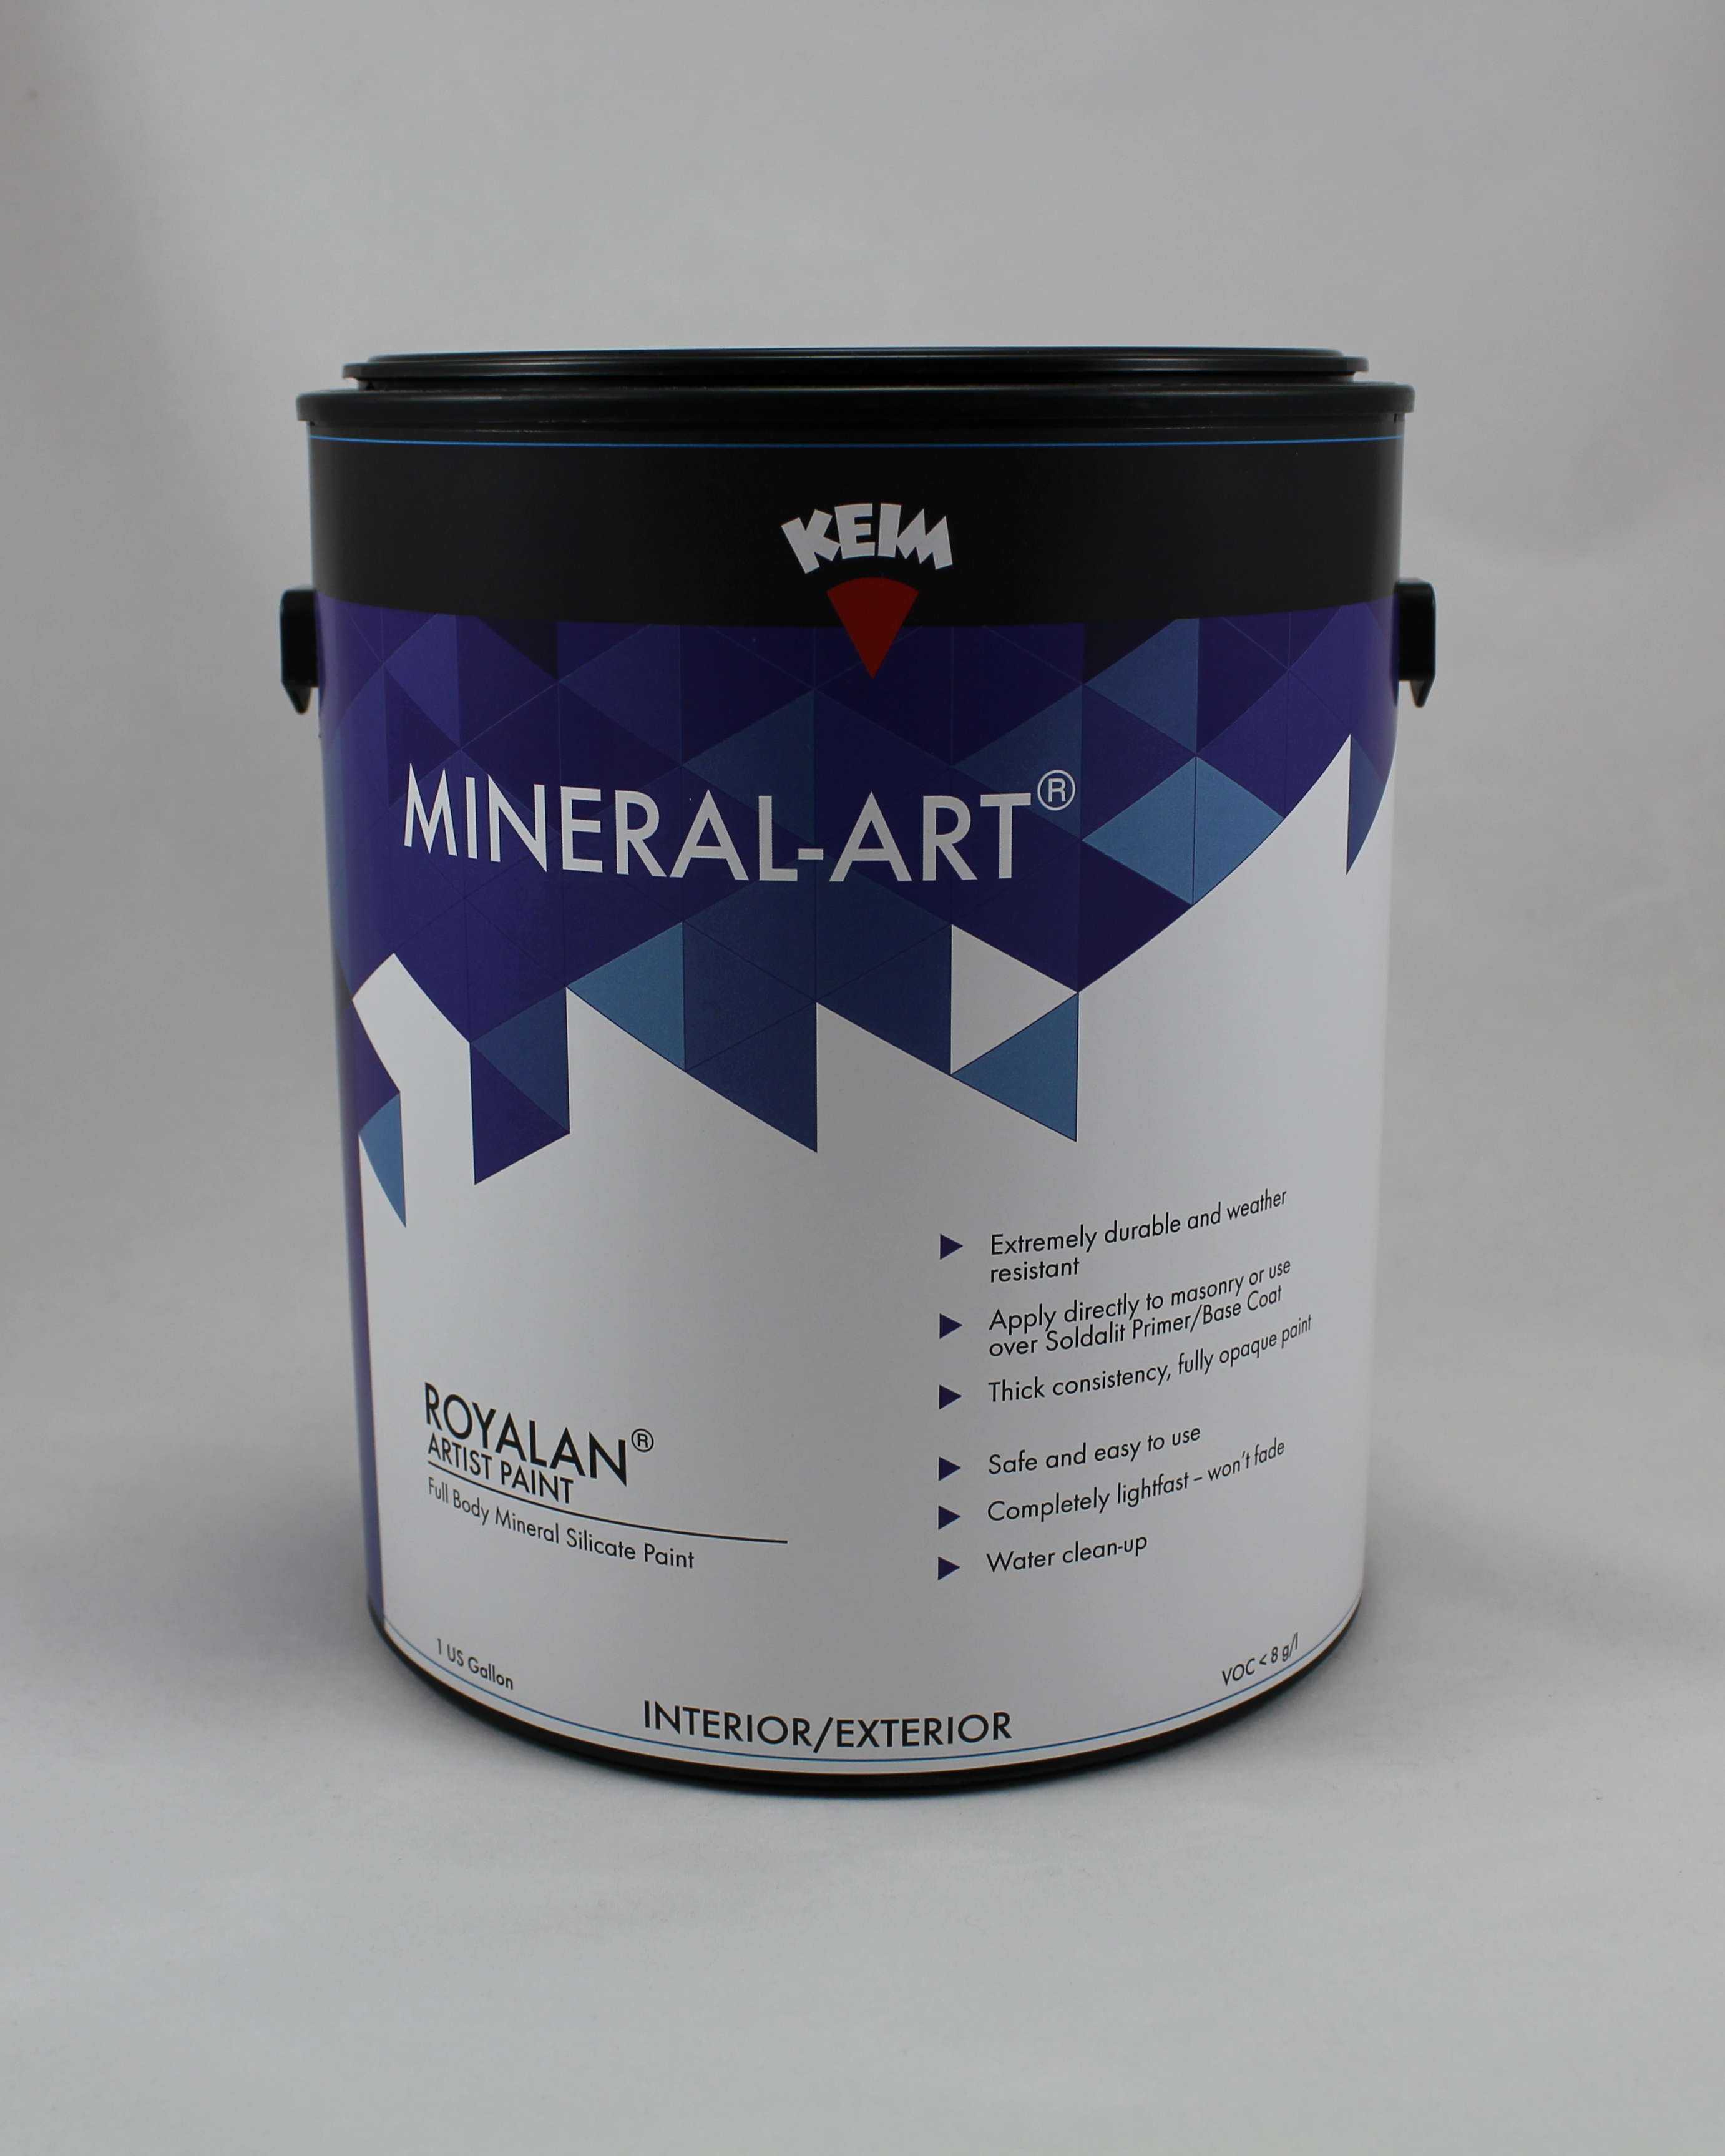 Royalan Artist Paint (S-043)